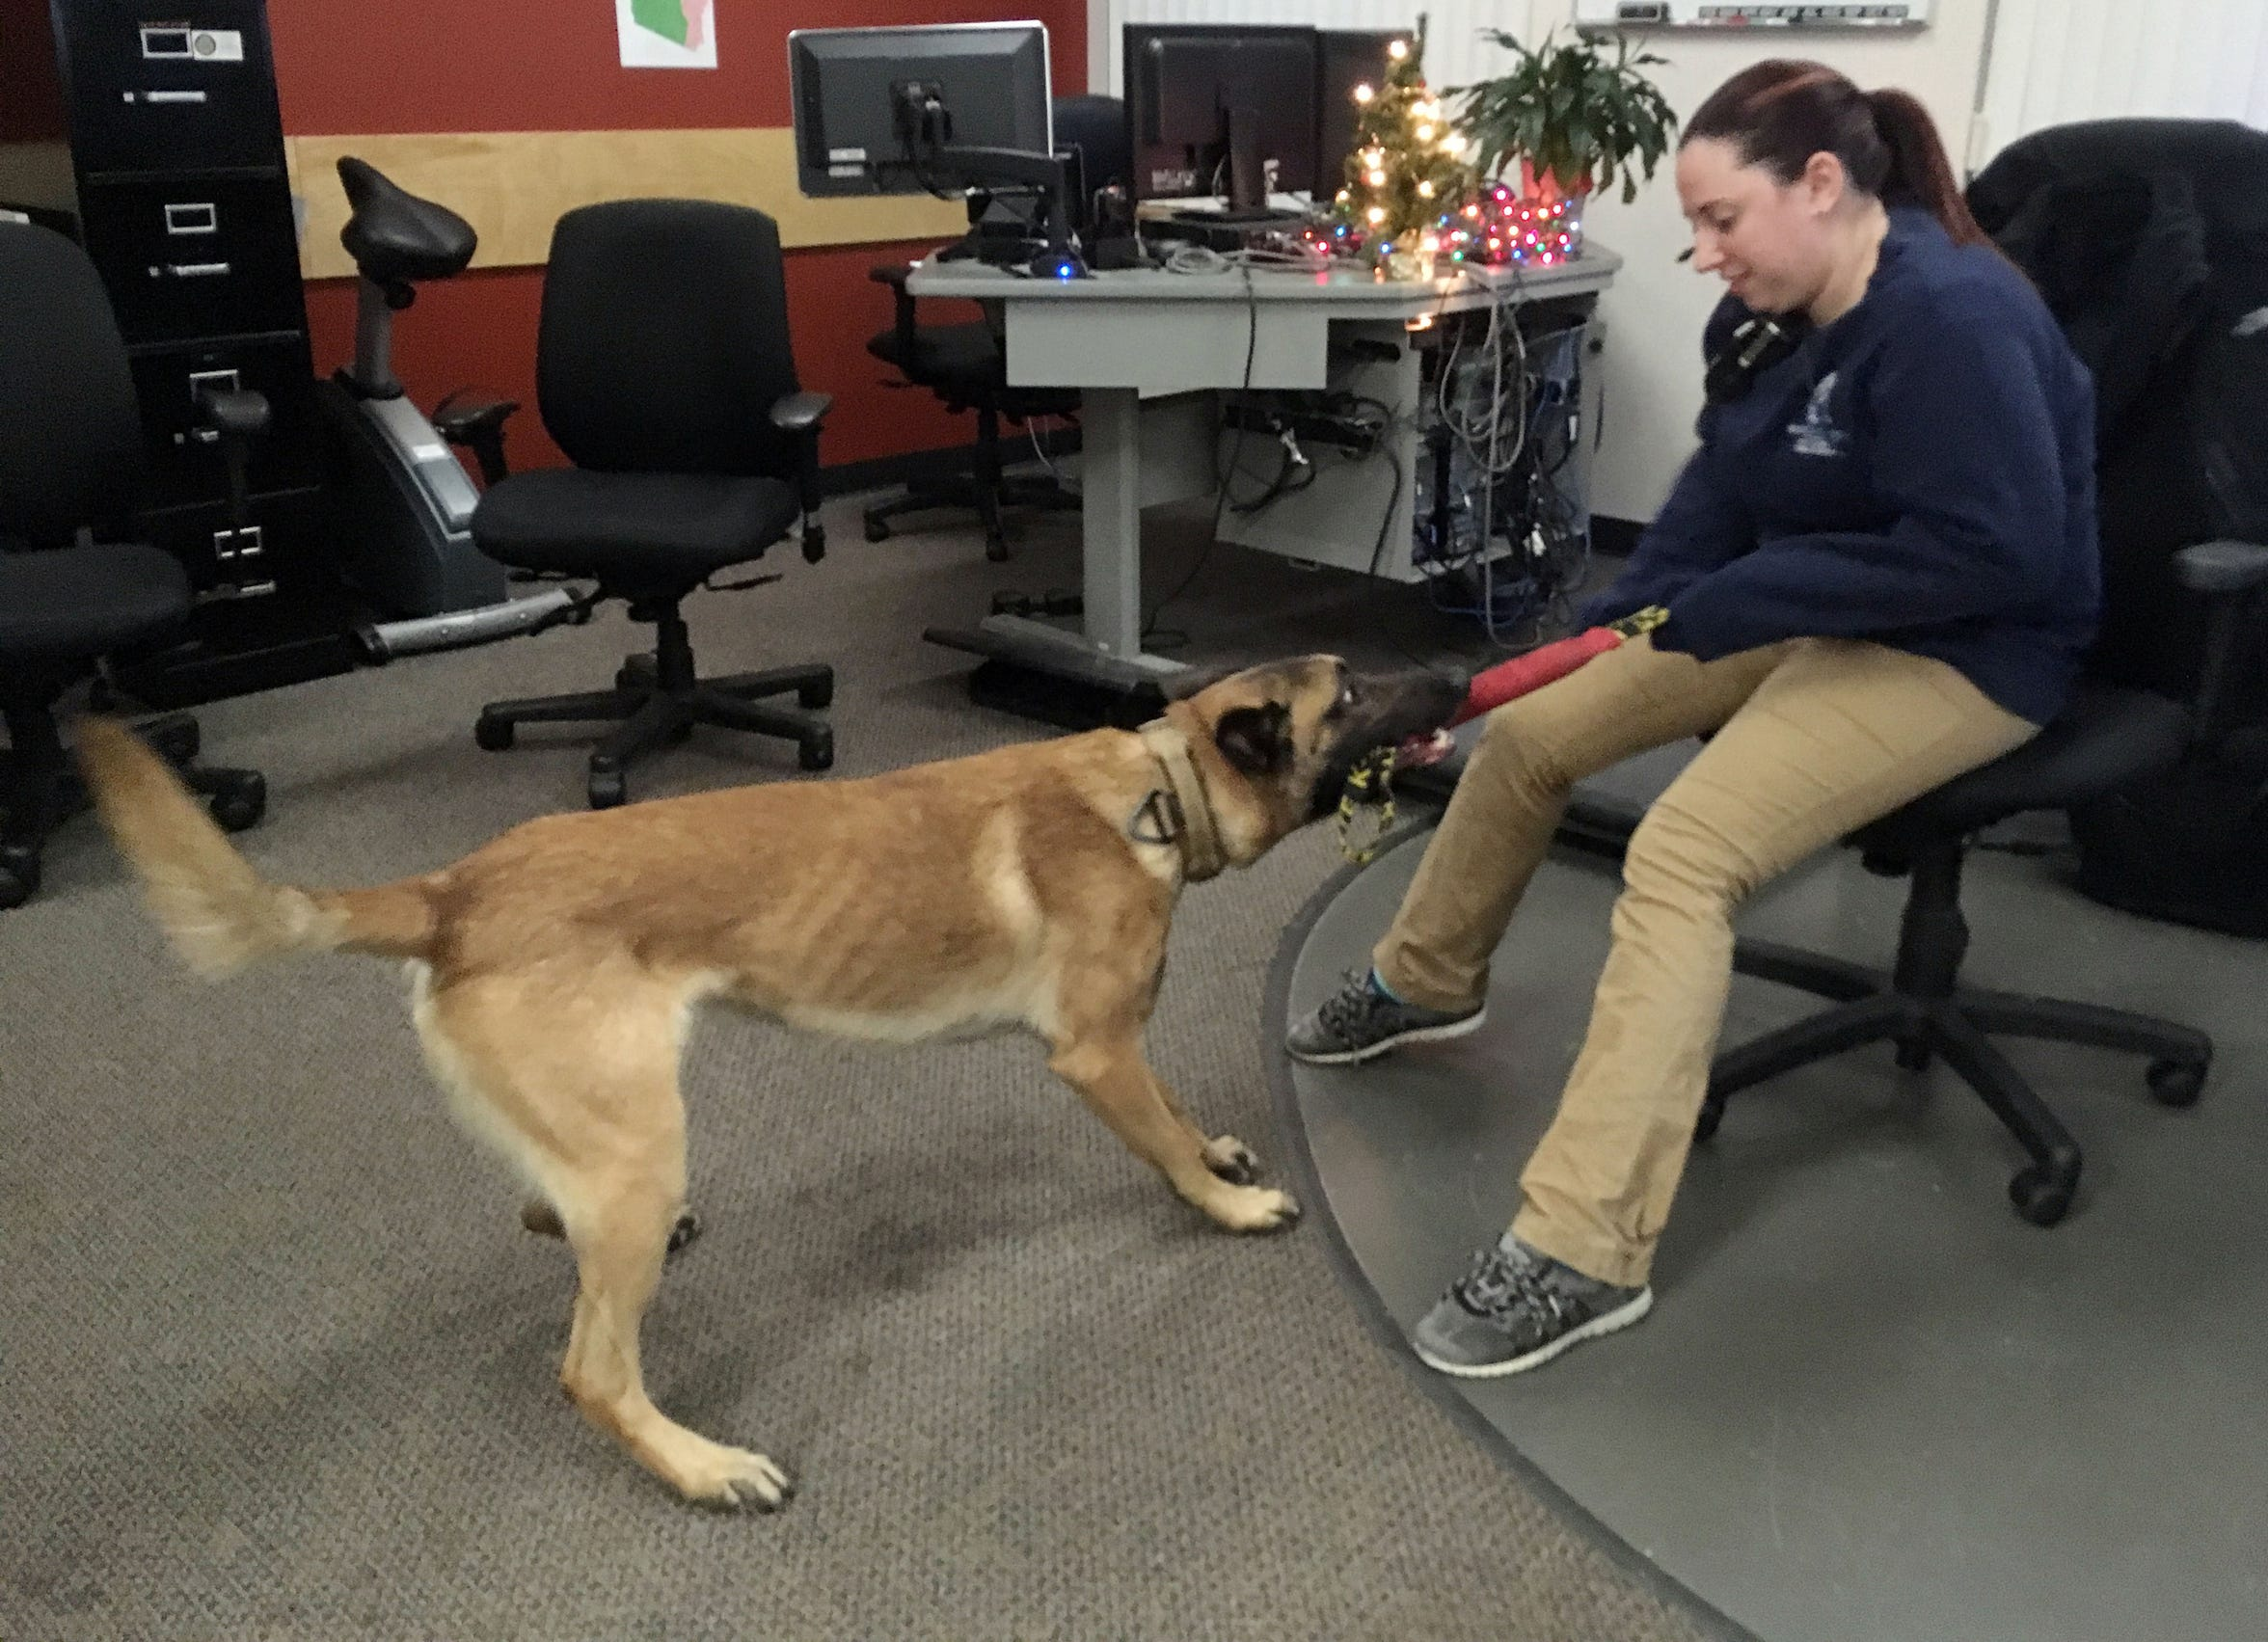 Dispatcher Michele Shepard plays tug-of-war with K9 Rush during a brief lull in phone calls on Dec. 6, 2018.